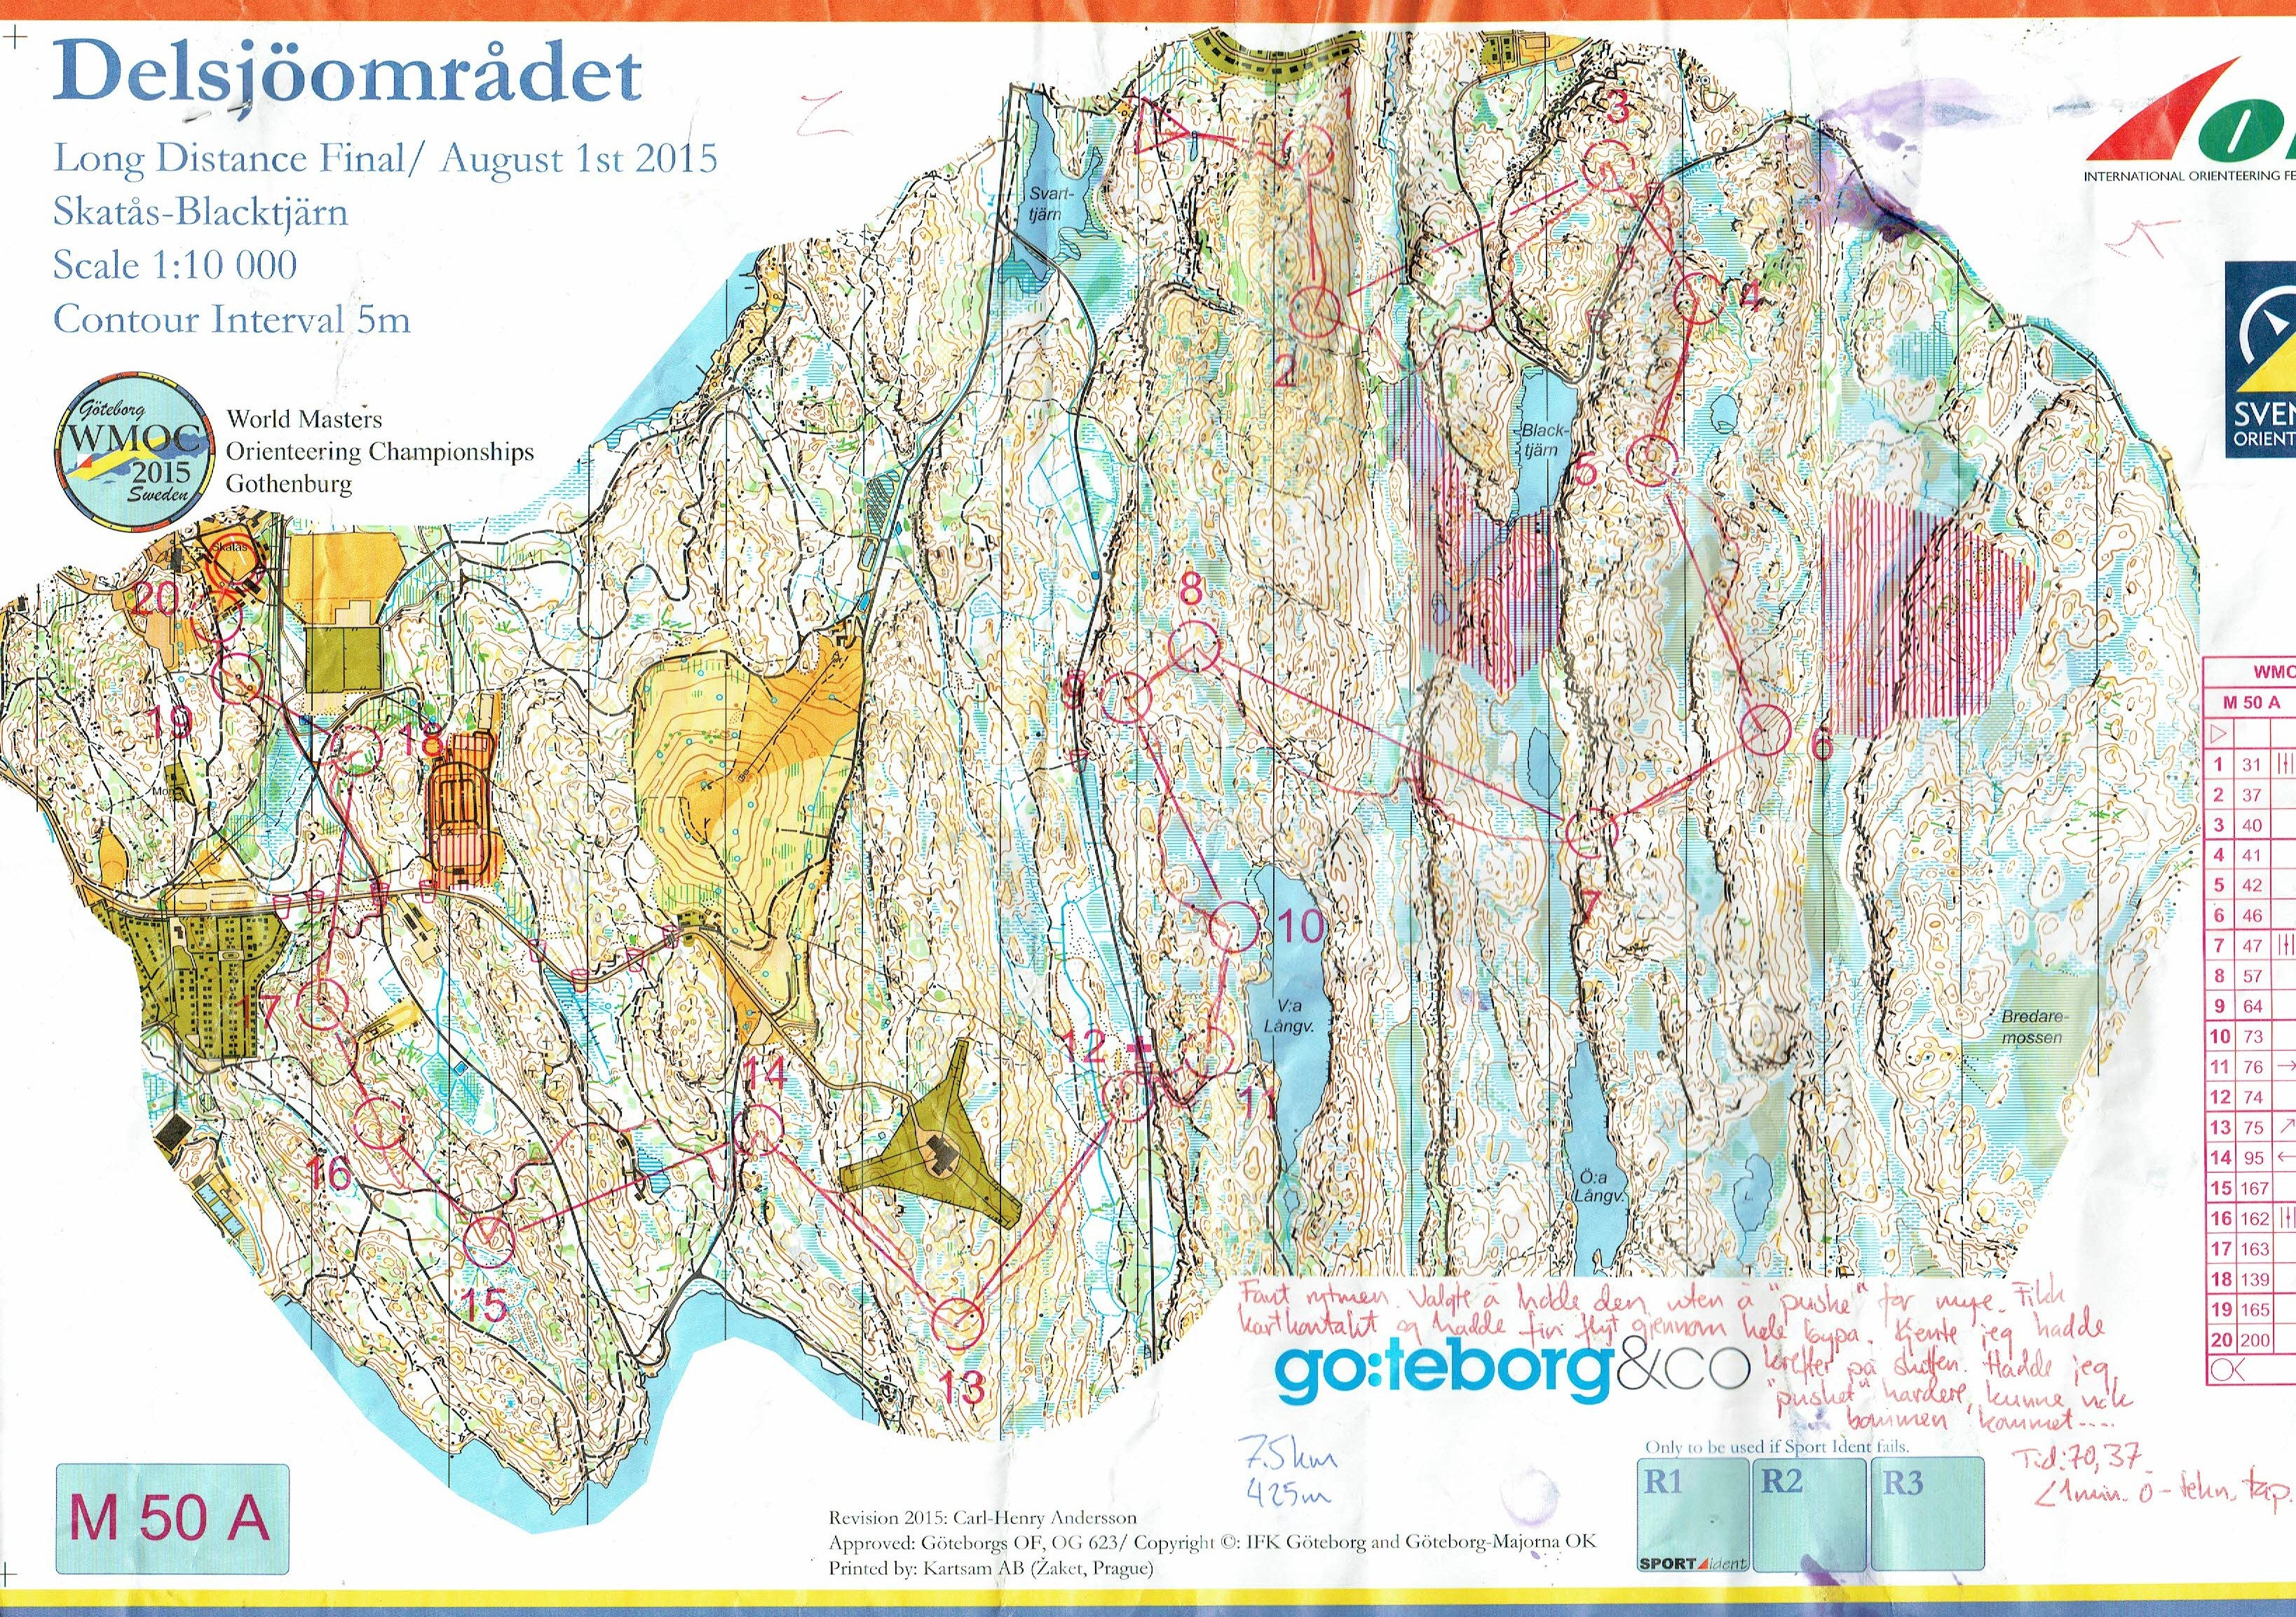 World Masters Orienteering Championships (01/08/2015)